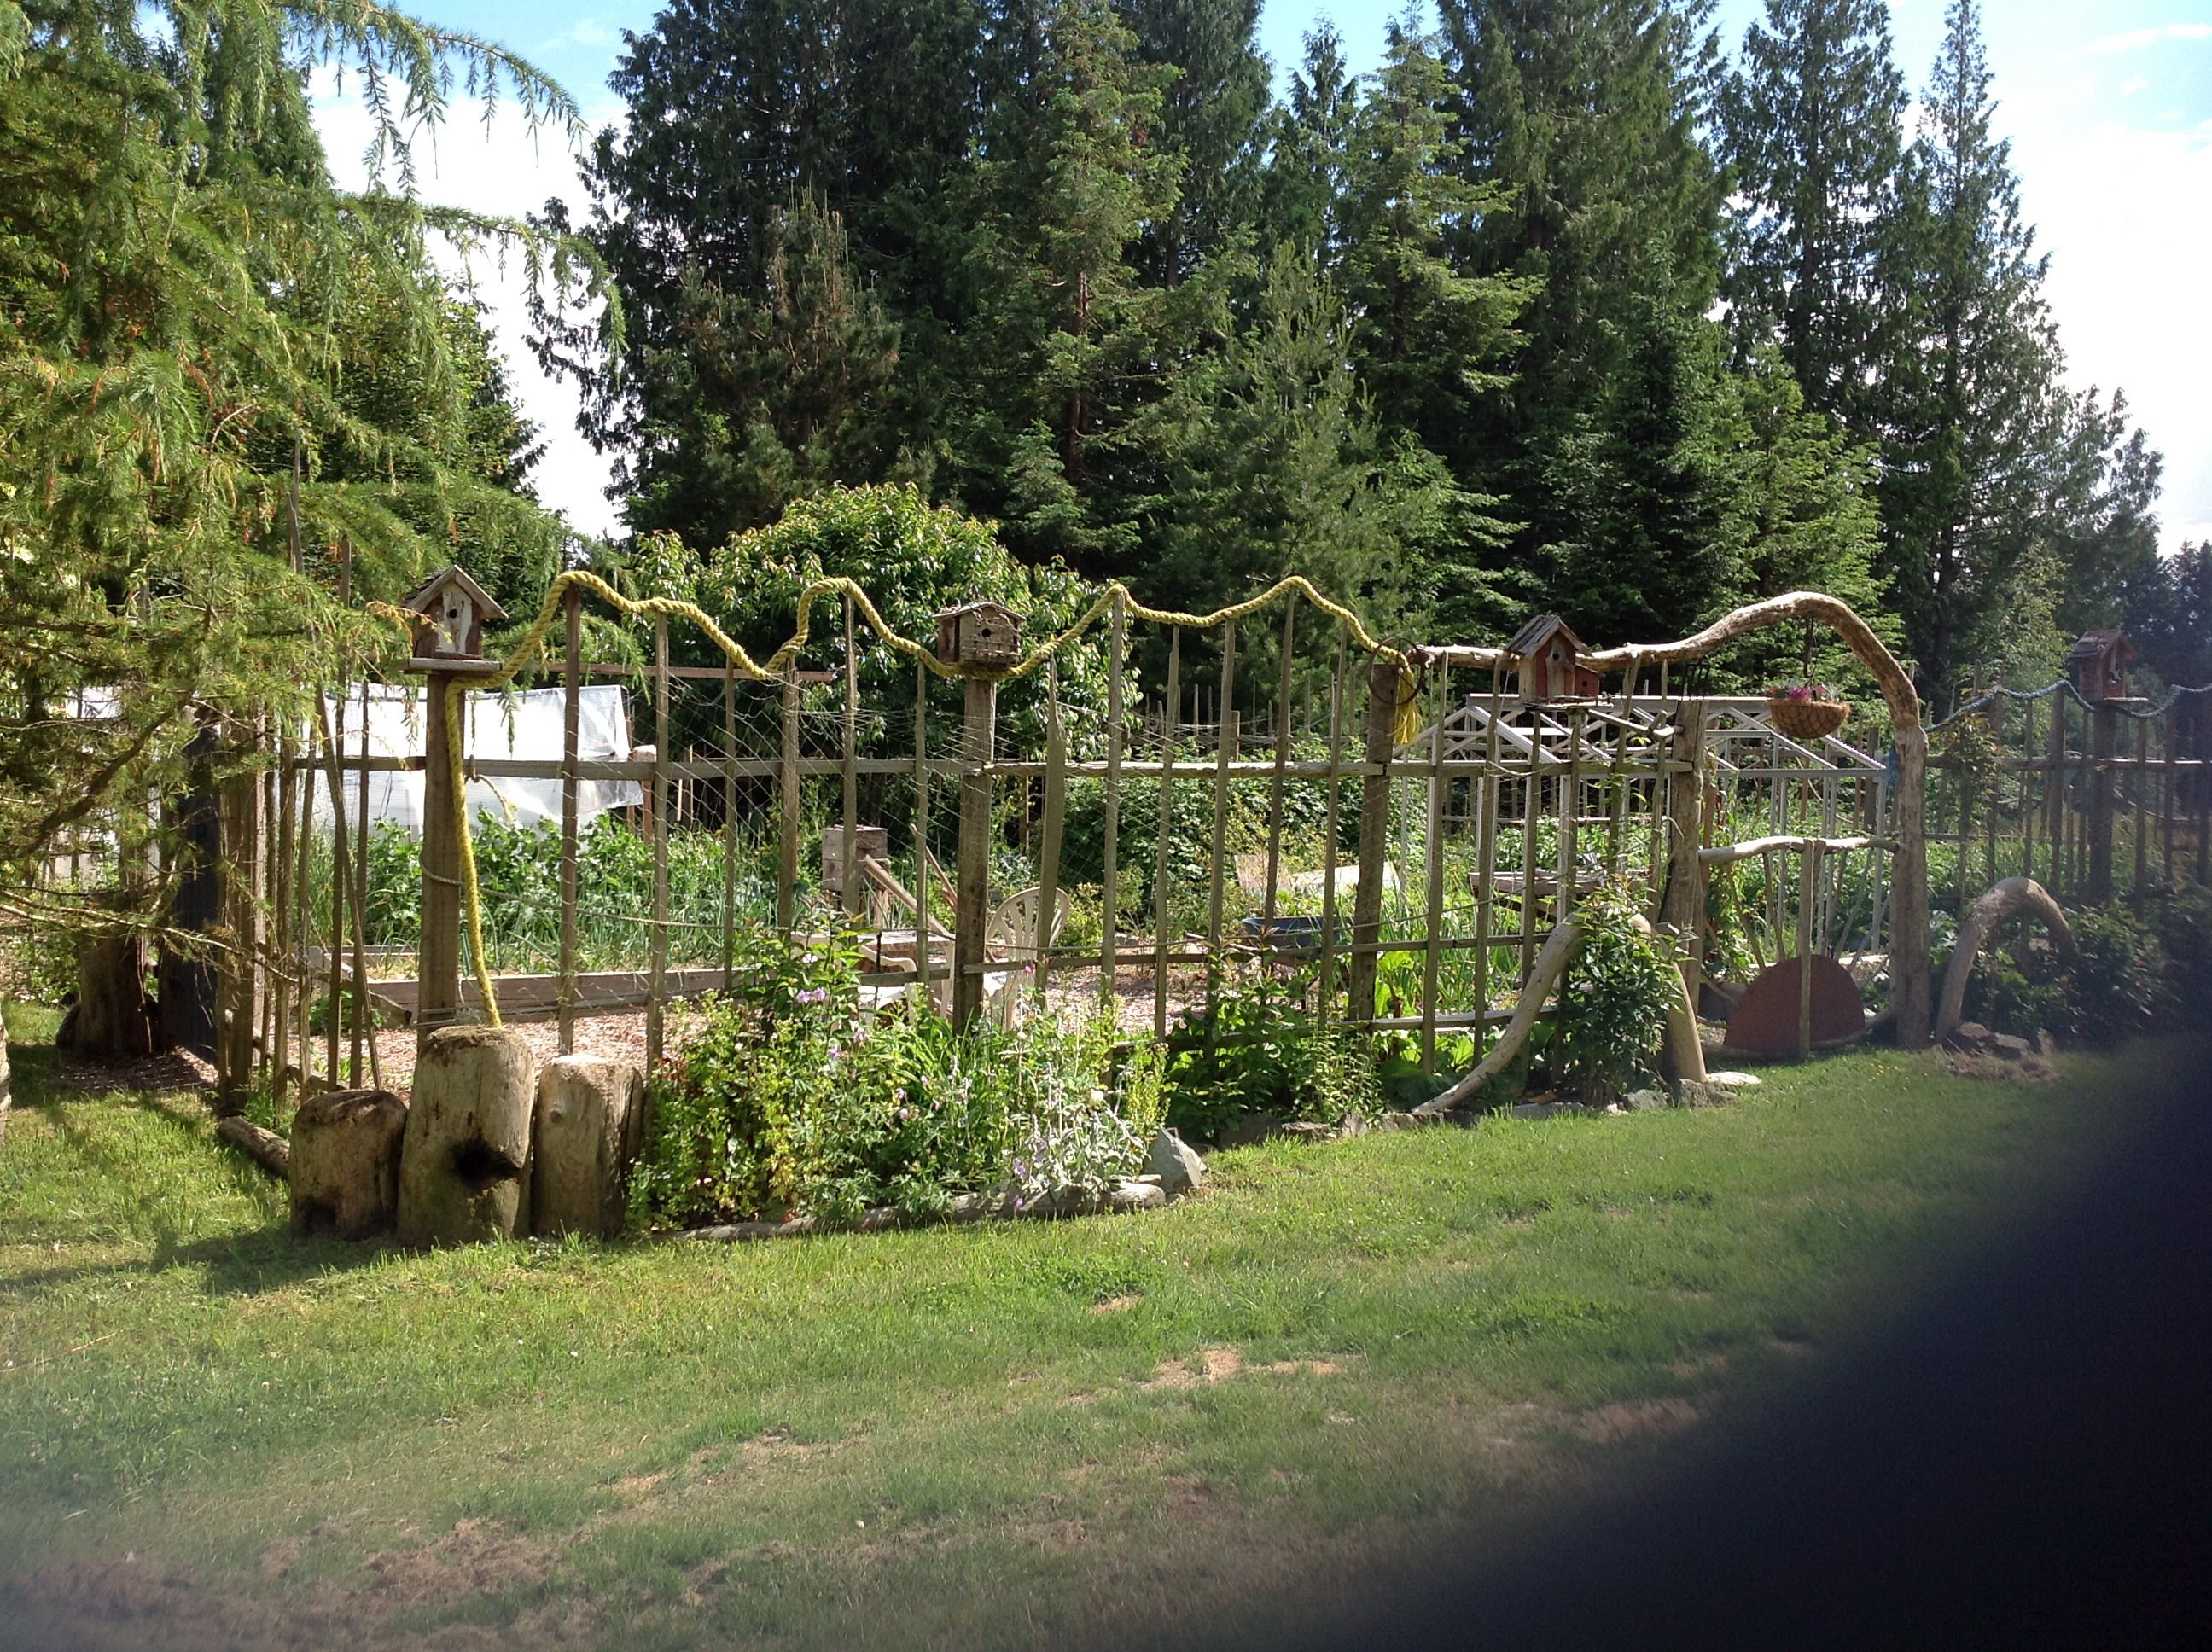 How To Build A Deer Proofu2026.Funky, Garden Enclosure Fence | Shoe String Life  Style